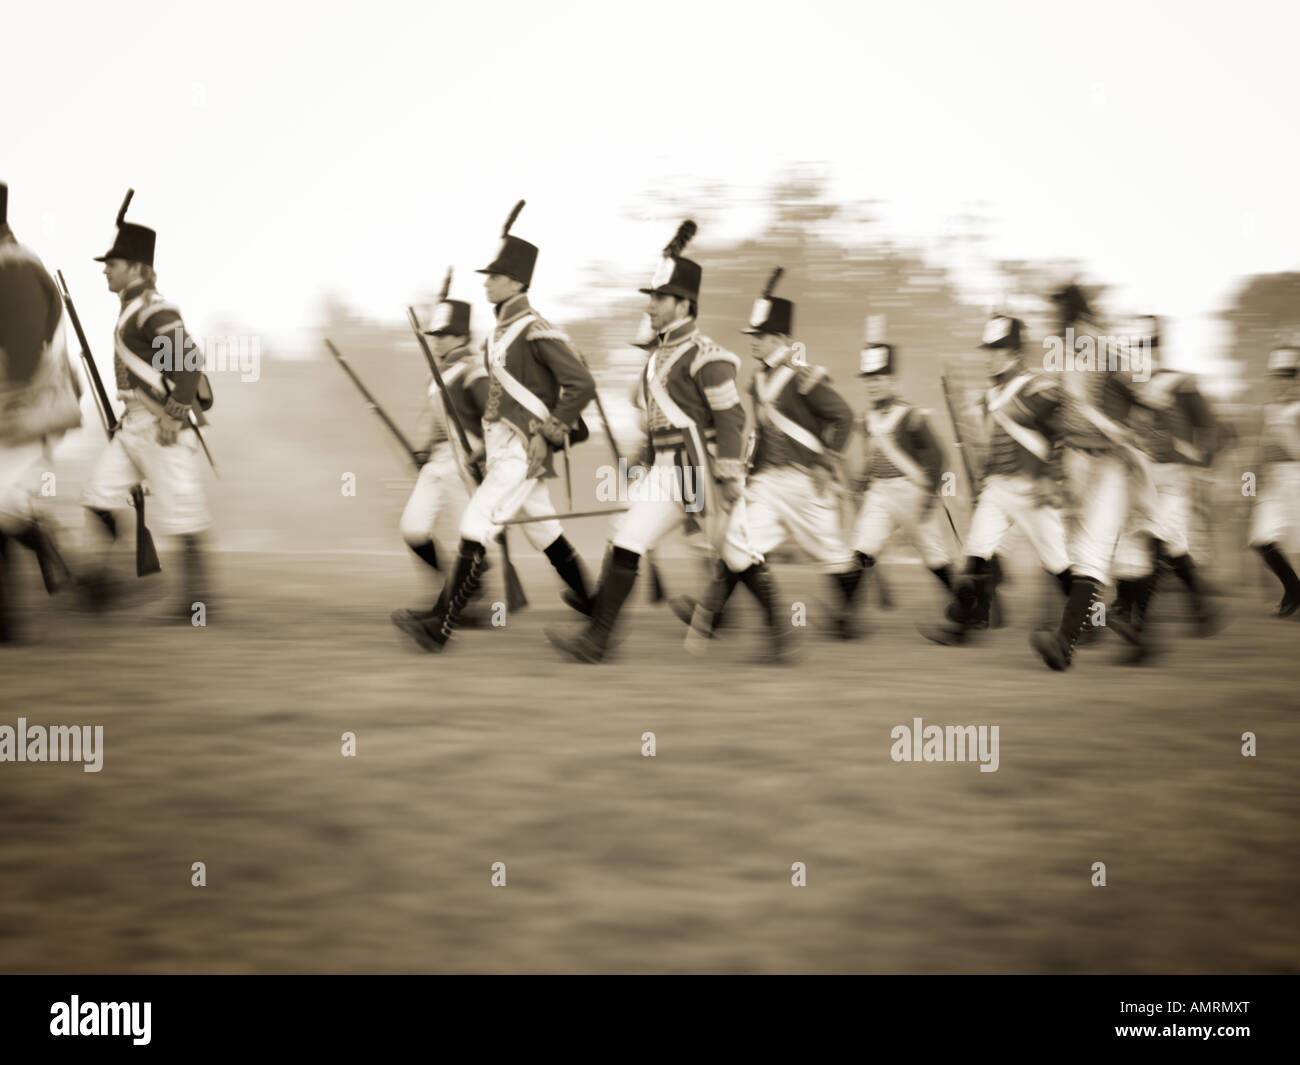 Canada Ontario Fort Erie Old Fort Erie reenactment of War of 1812 - Stock Image